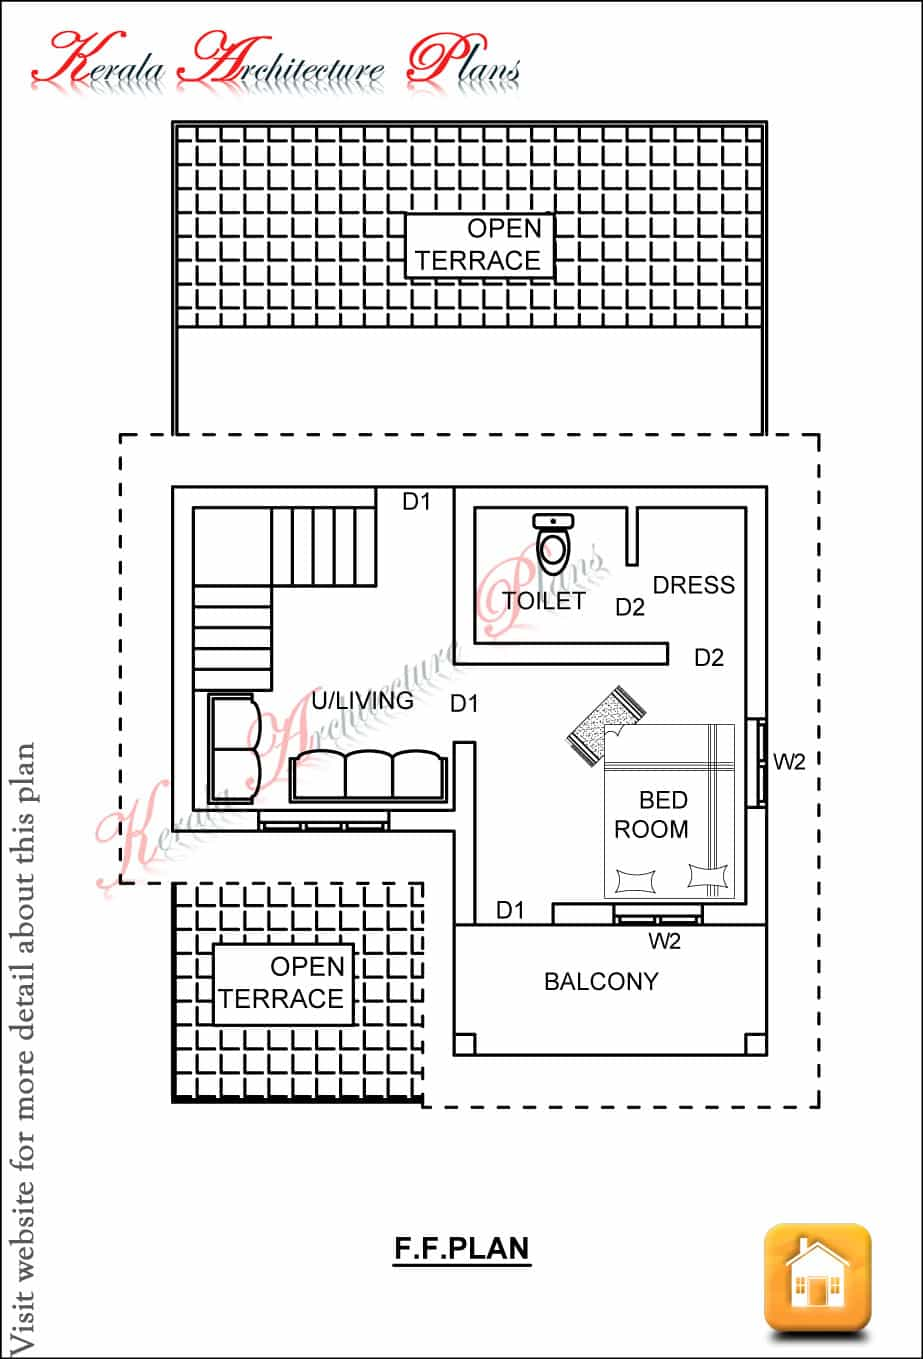 2 bedroom indian house plans. 1200 sq ft house plans 2 bedroom indian | savae.org. savae org